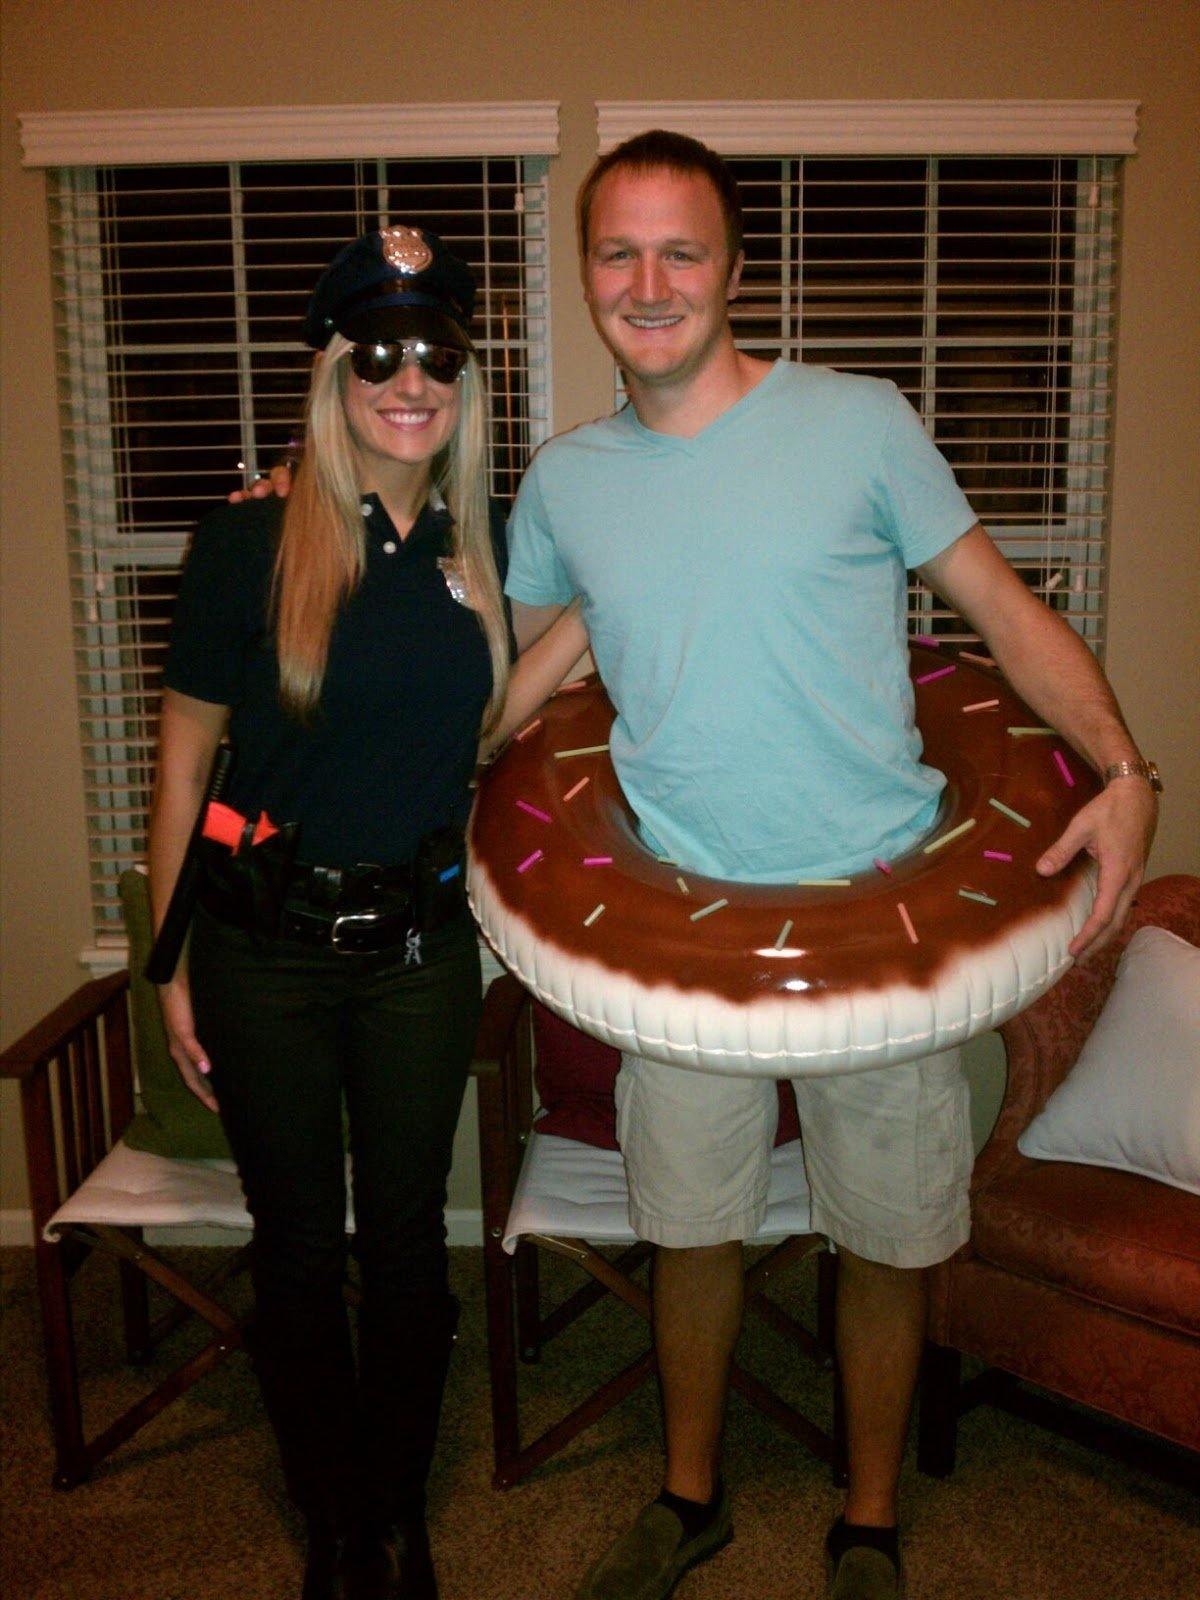 10 Great Awesome Couple Halloween Costume Ideas katie in kansas diy couples halloween costume ideas 8 2021